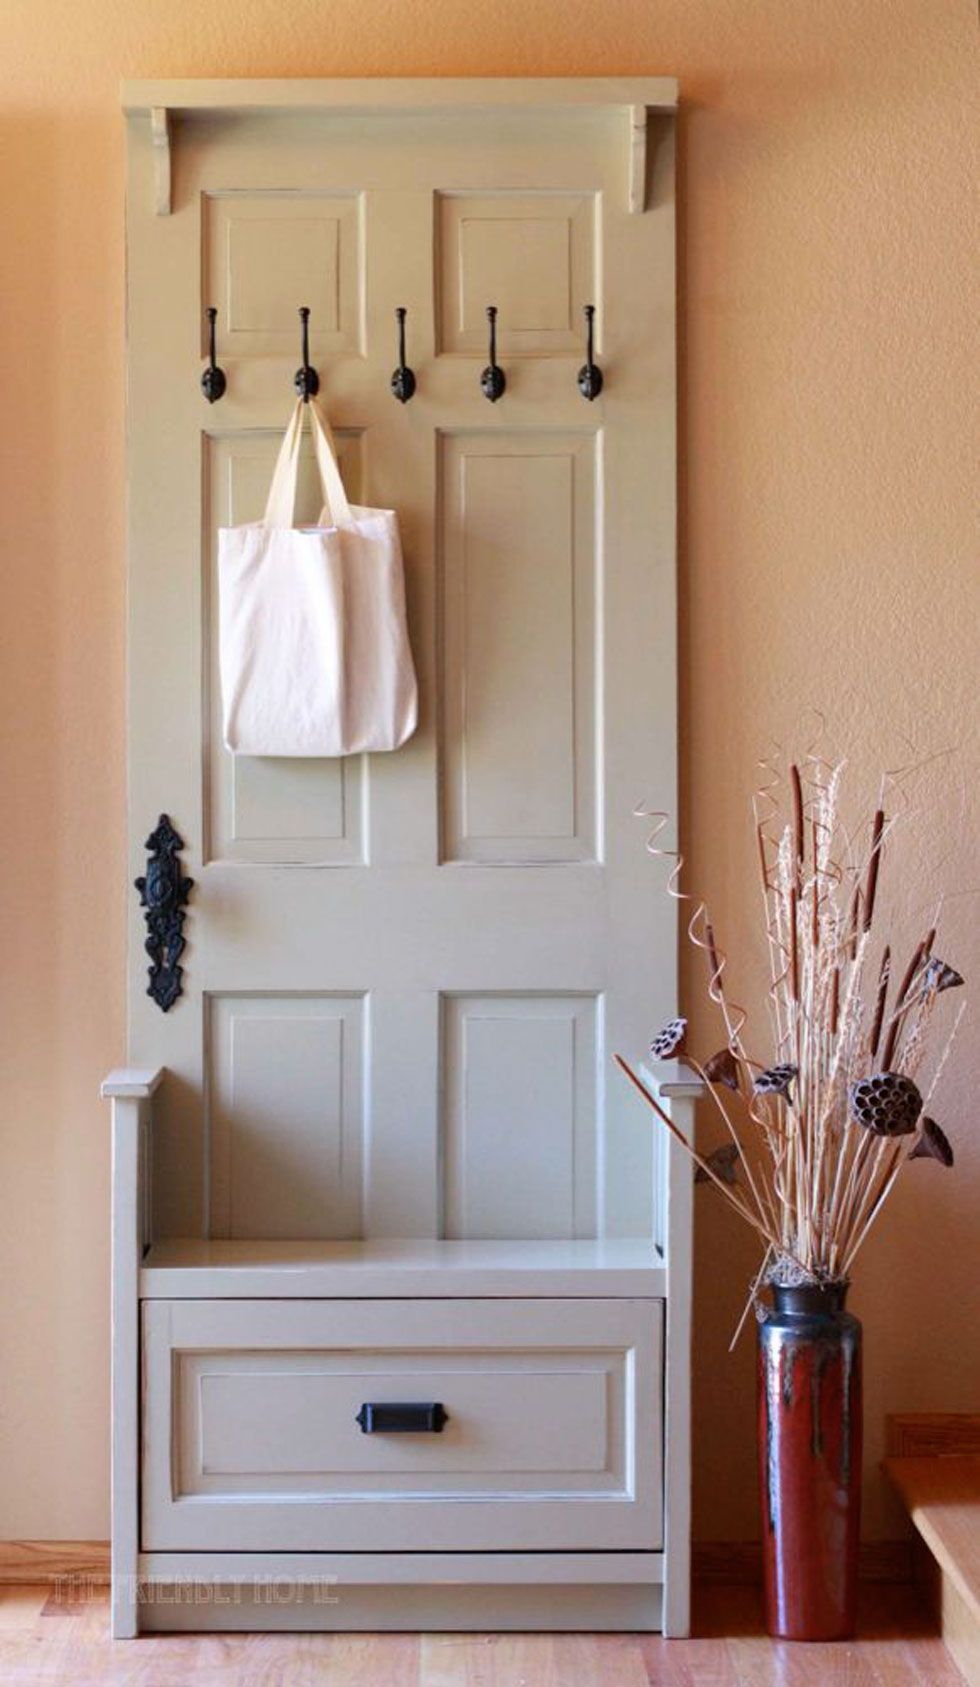 & Repurposed Door Crafts - Easy Craft Ideas